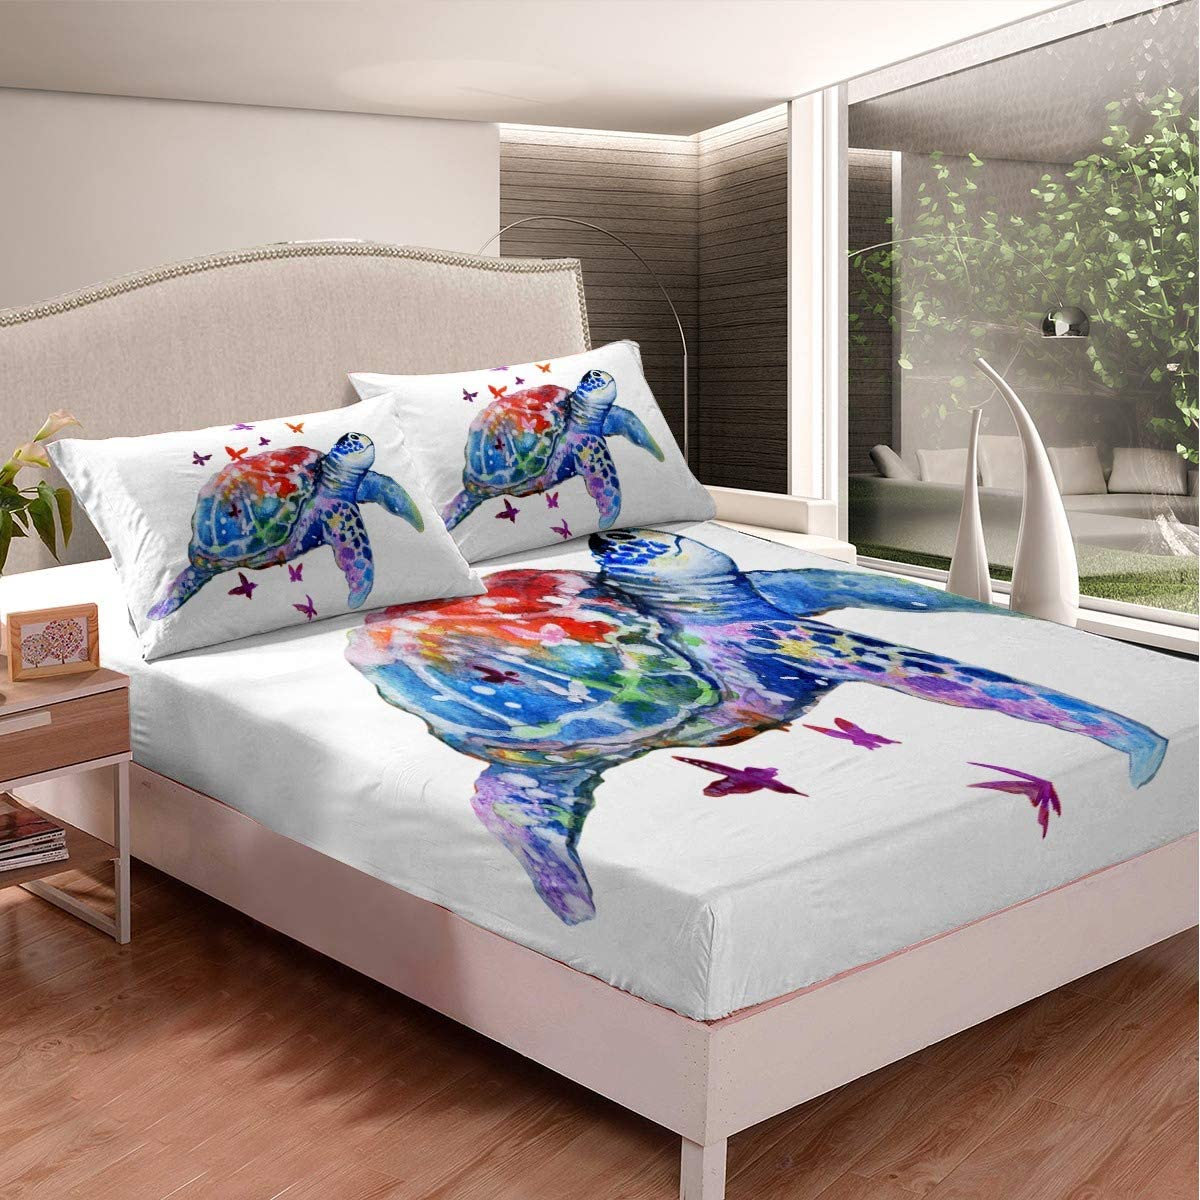 Twin Size Homewish Butterfly Fitted Sheet Colorful Butterflies Ink Spots Sketches Bedding Set 2pcs for Kids Animal Sheet Set Soft Polyester Bed Sheets 1 Fitted Sheet + 1 Pillow Case